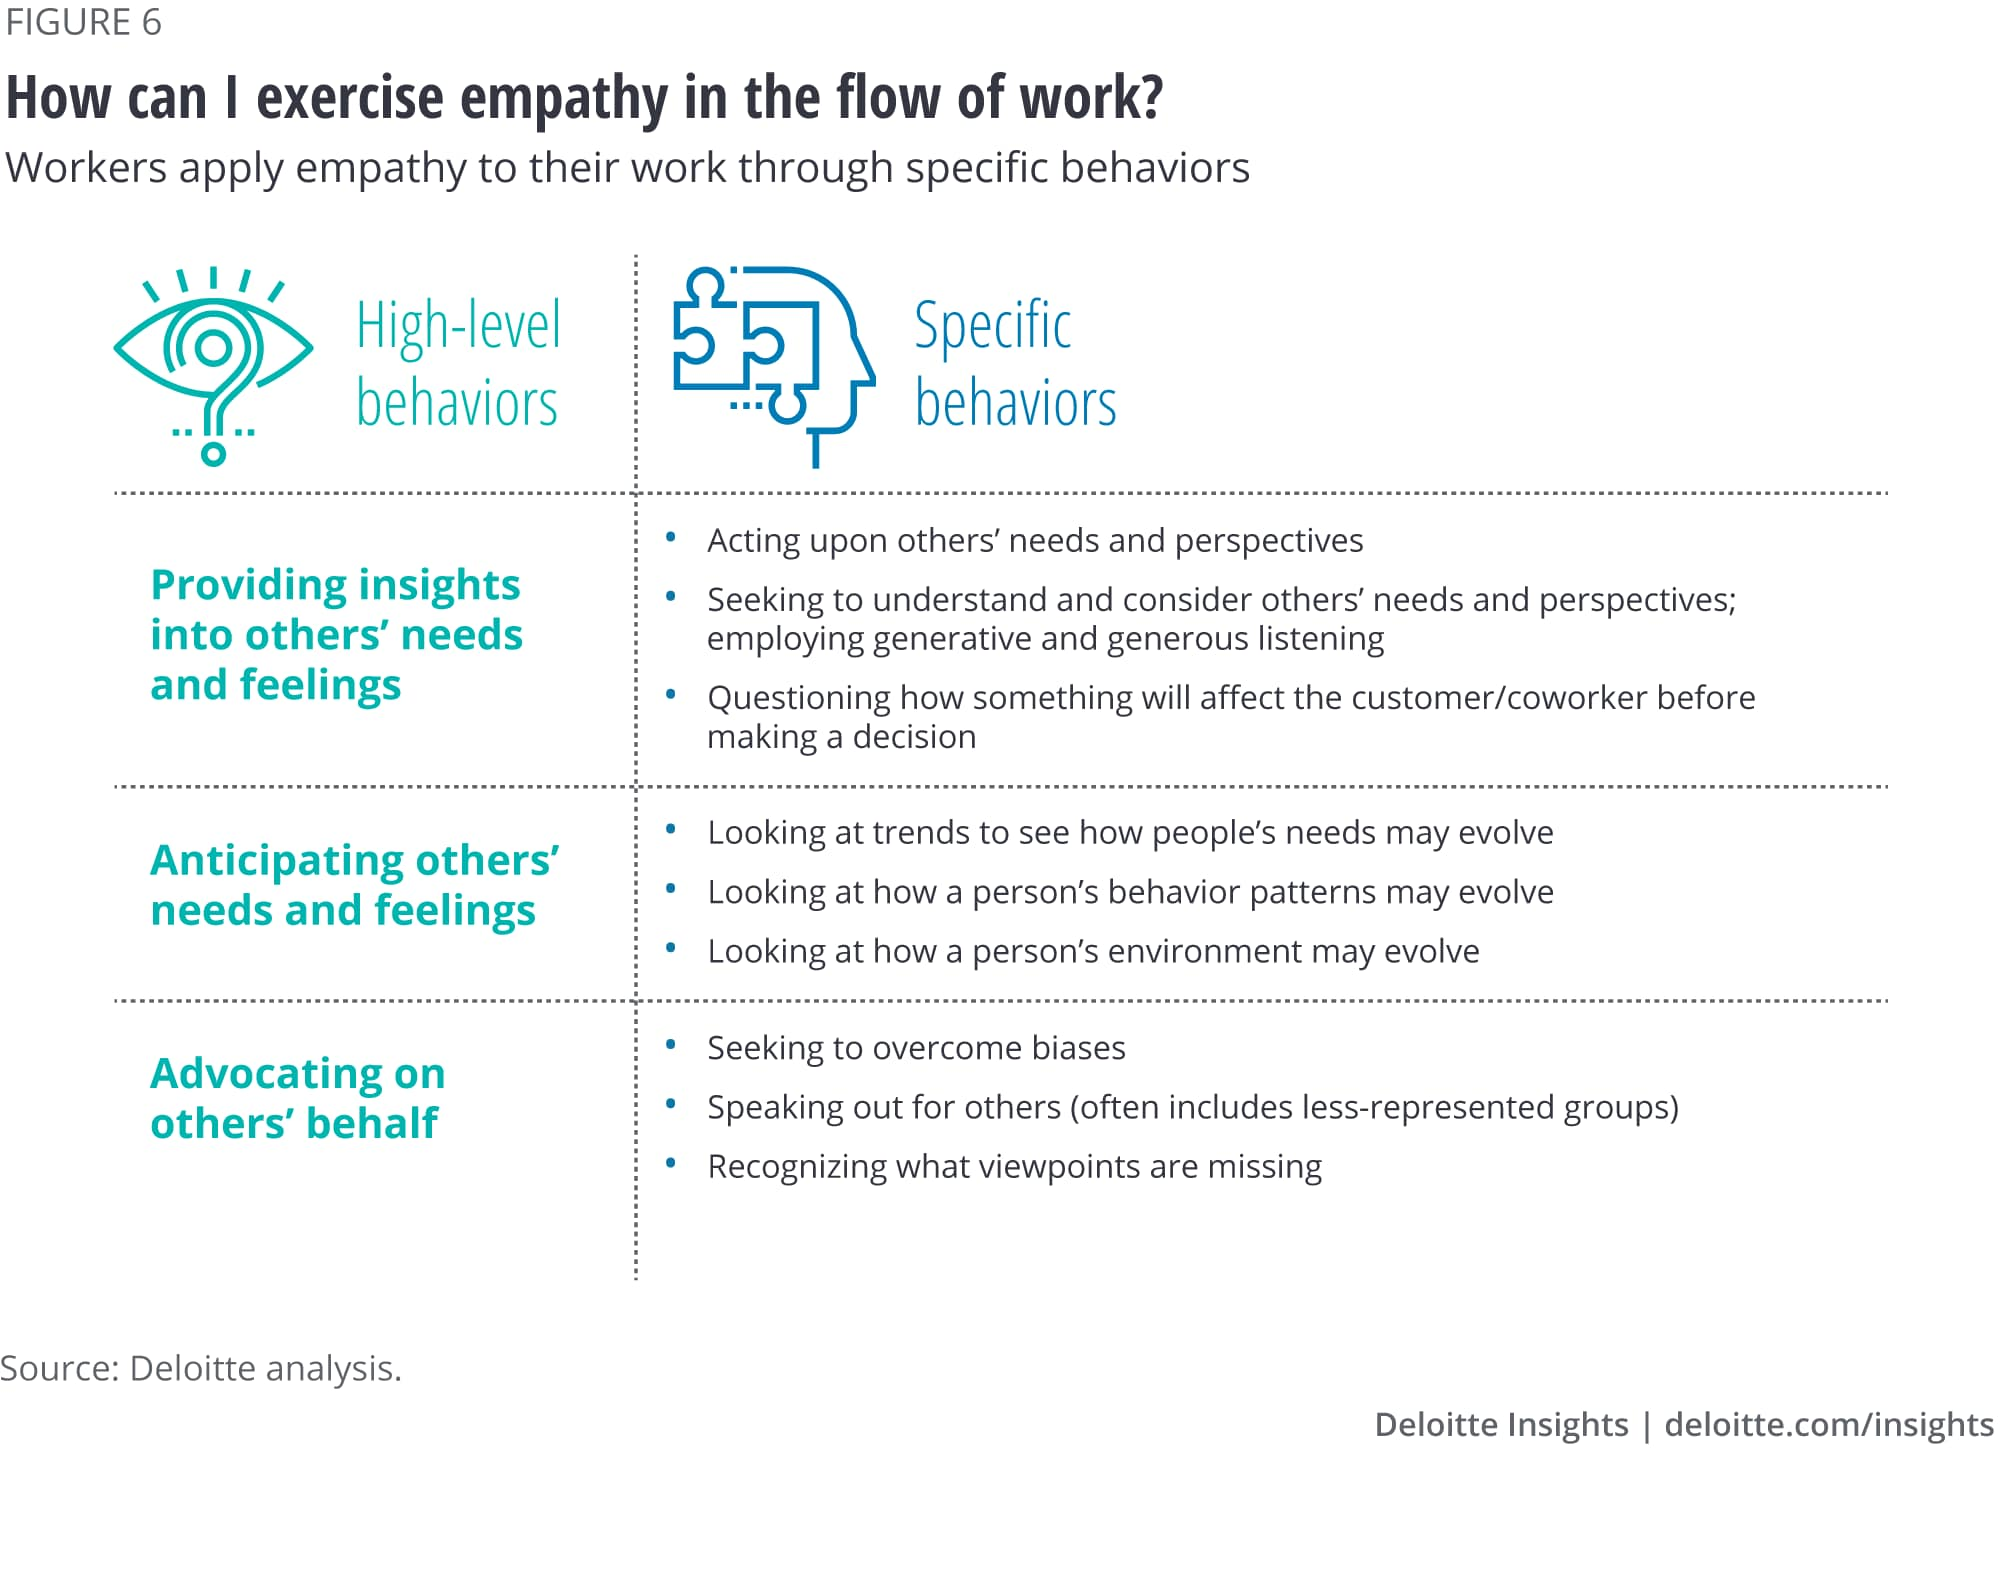 How can I exercise empathy in my work?